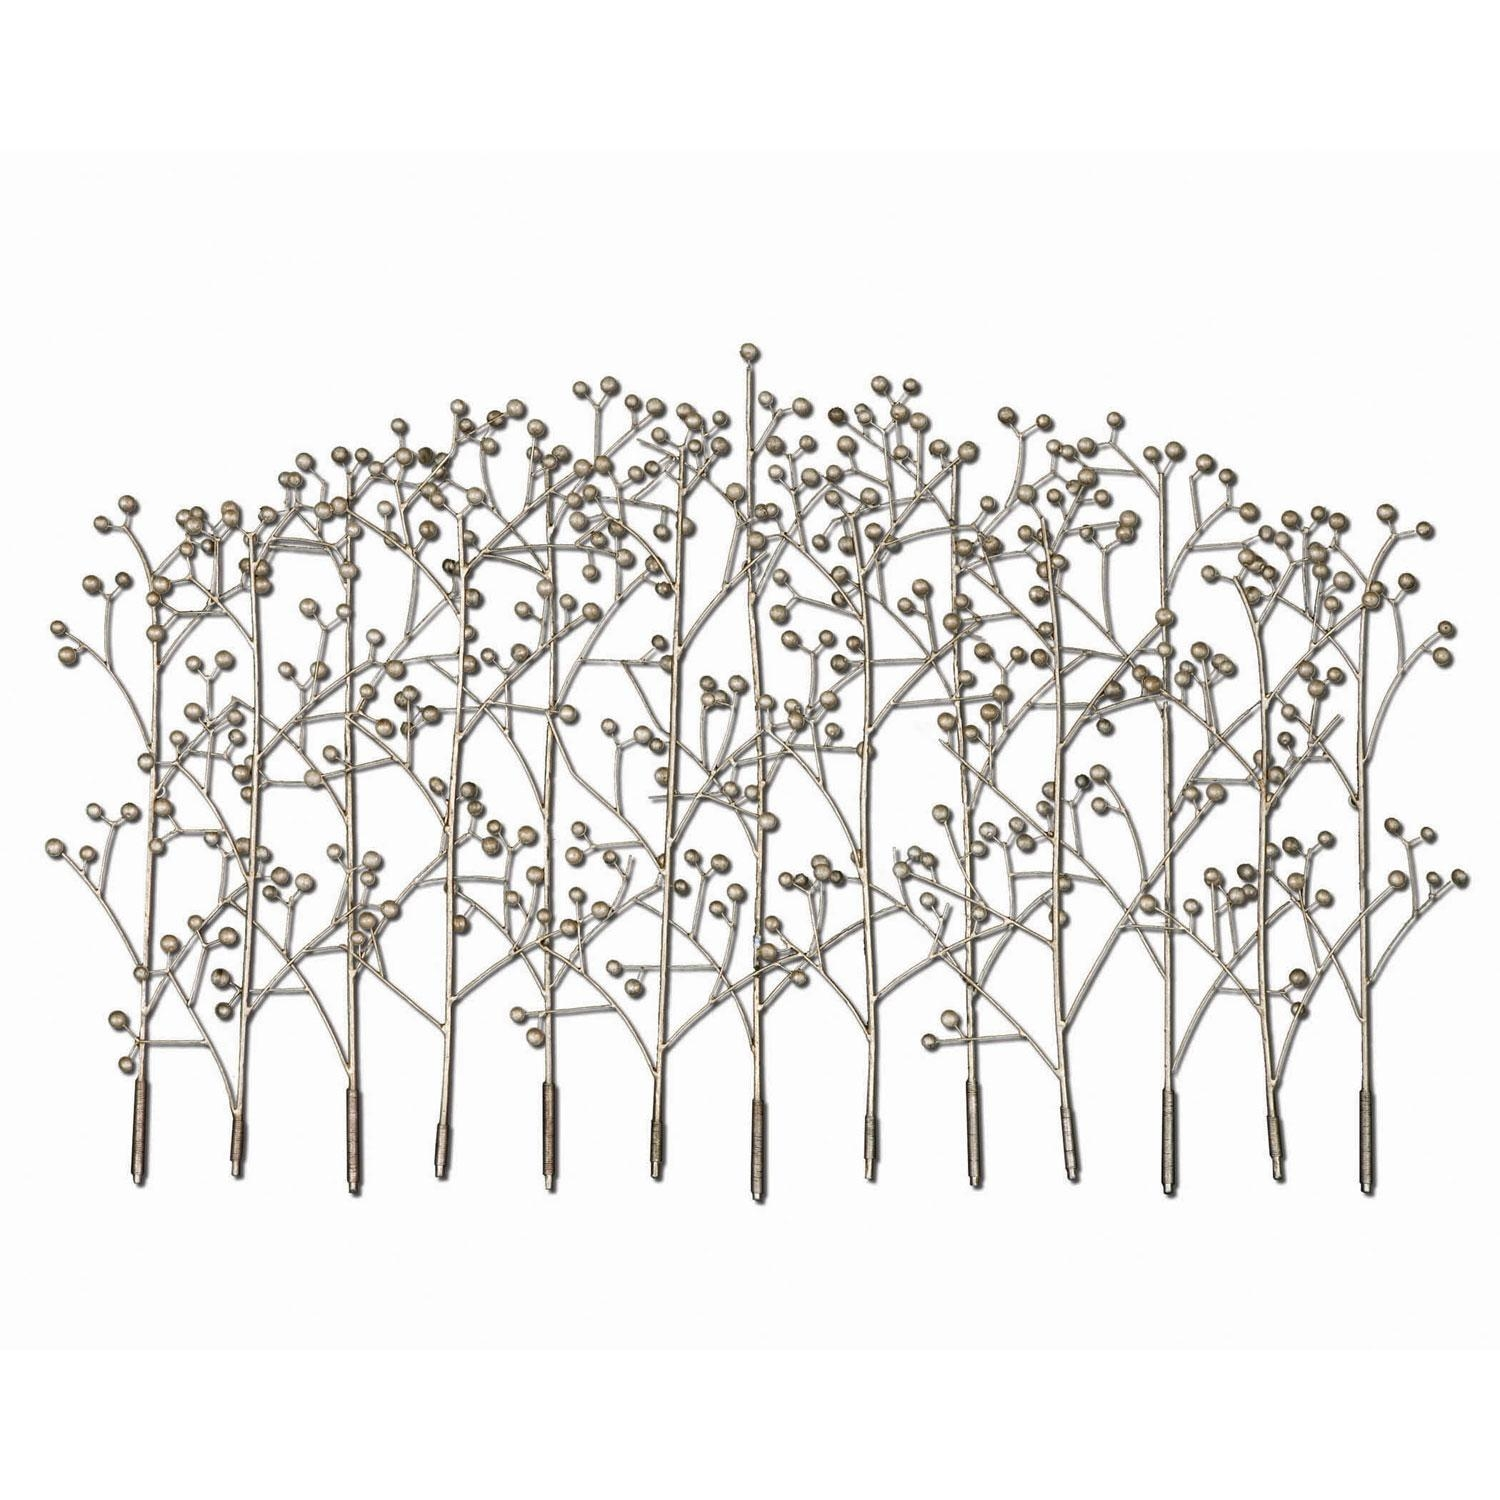 Iron Trees Metal Wall Art Uttermost Wall Sculpture Wall Decor Home In Uttermost Metal Wall Art (View 2 of 20)